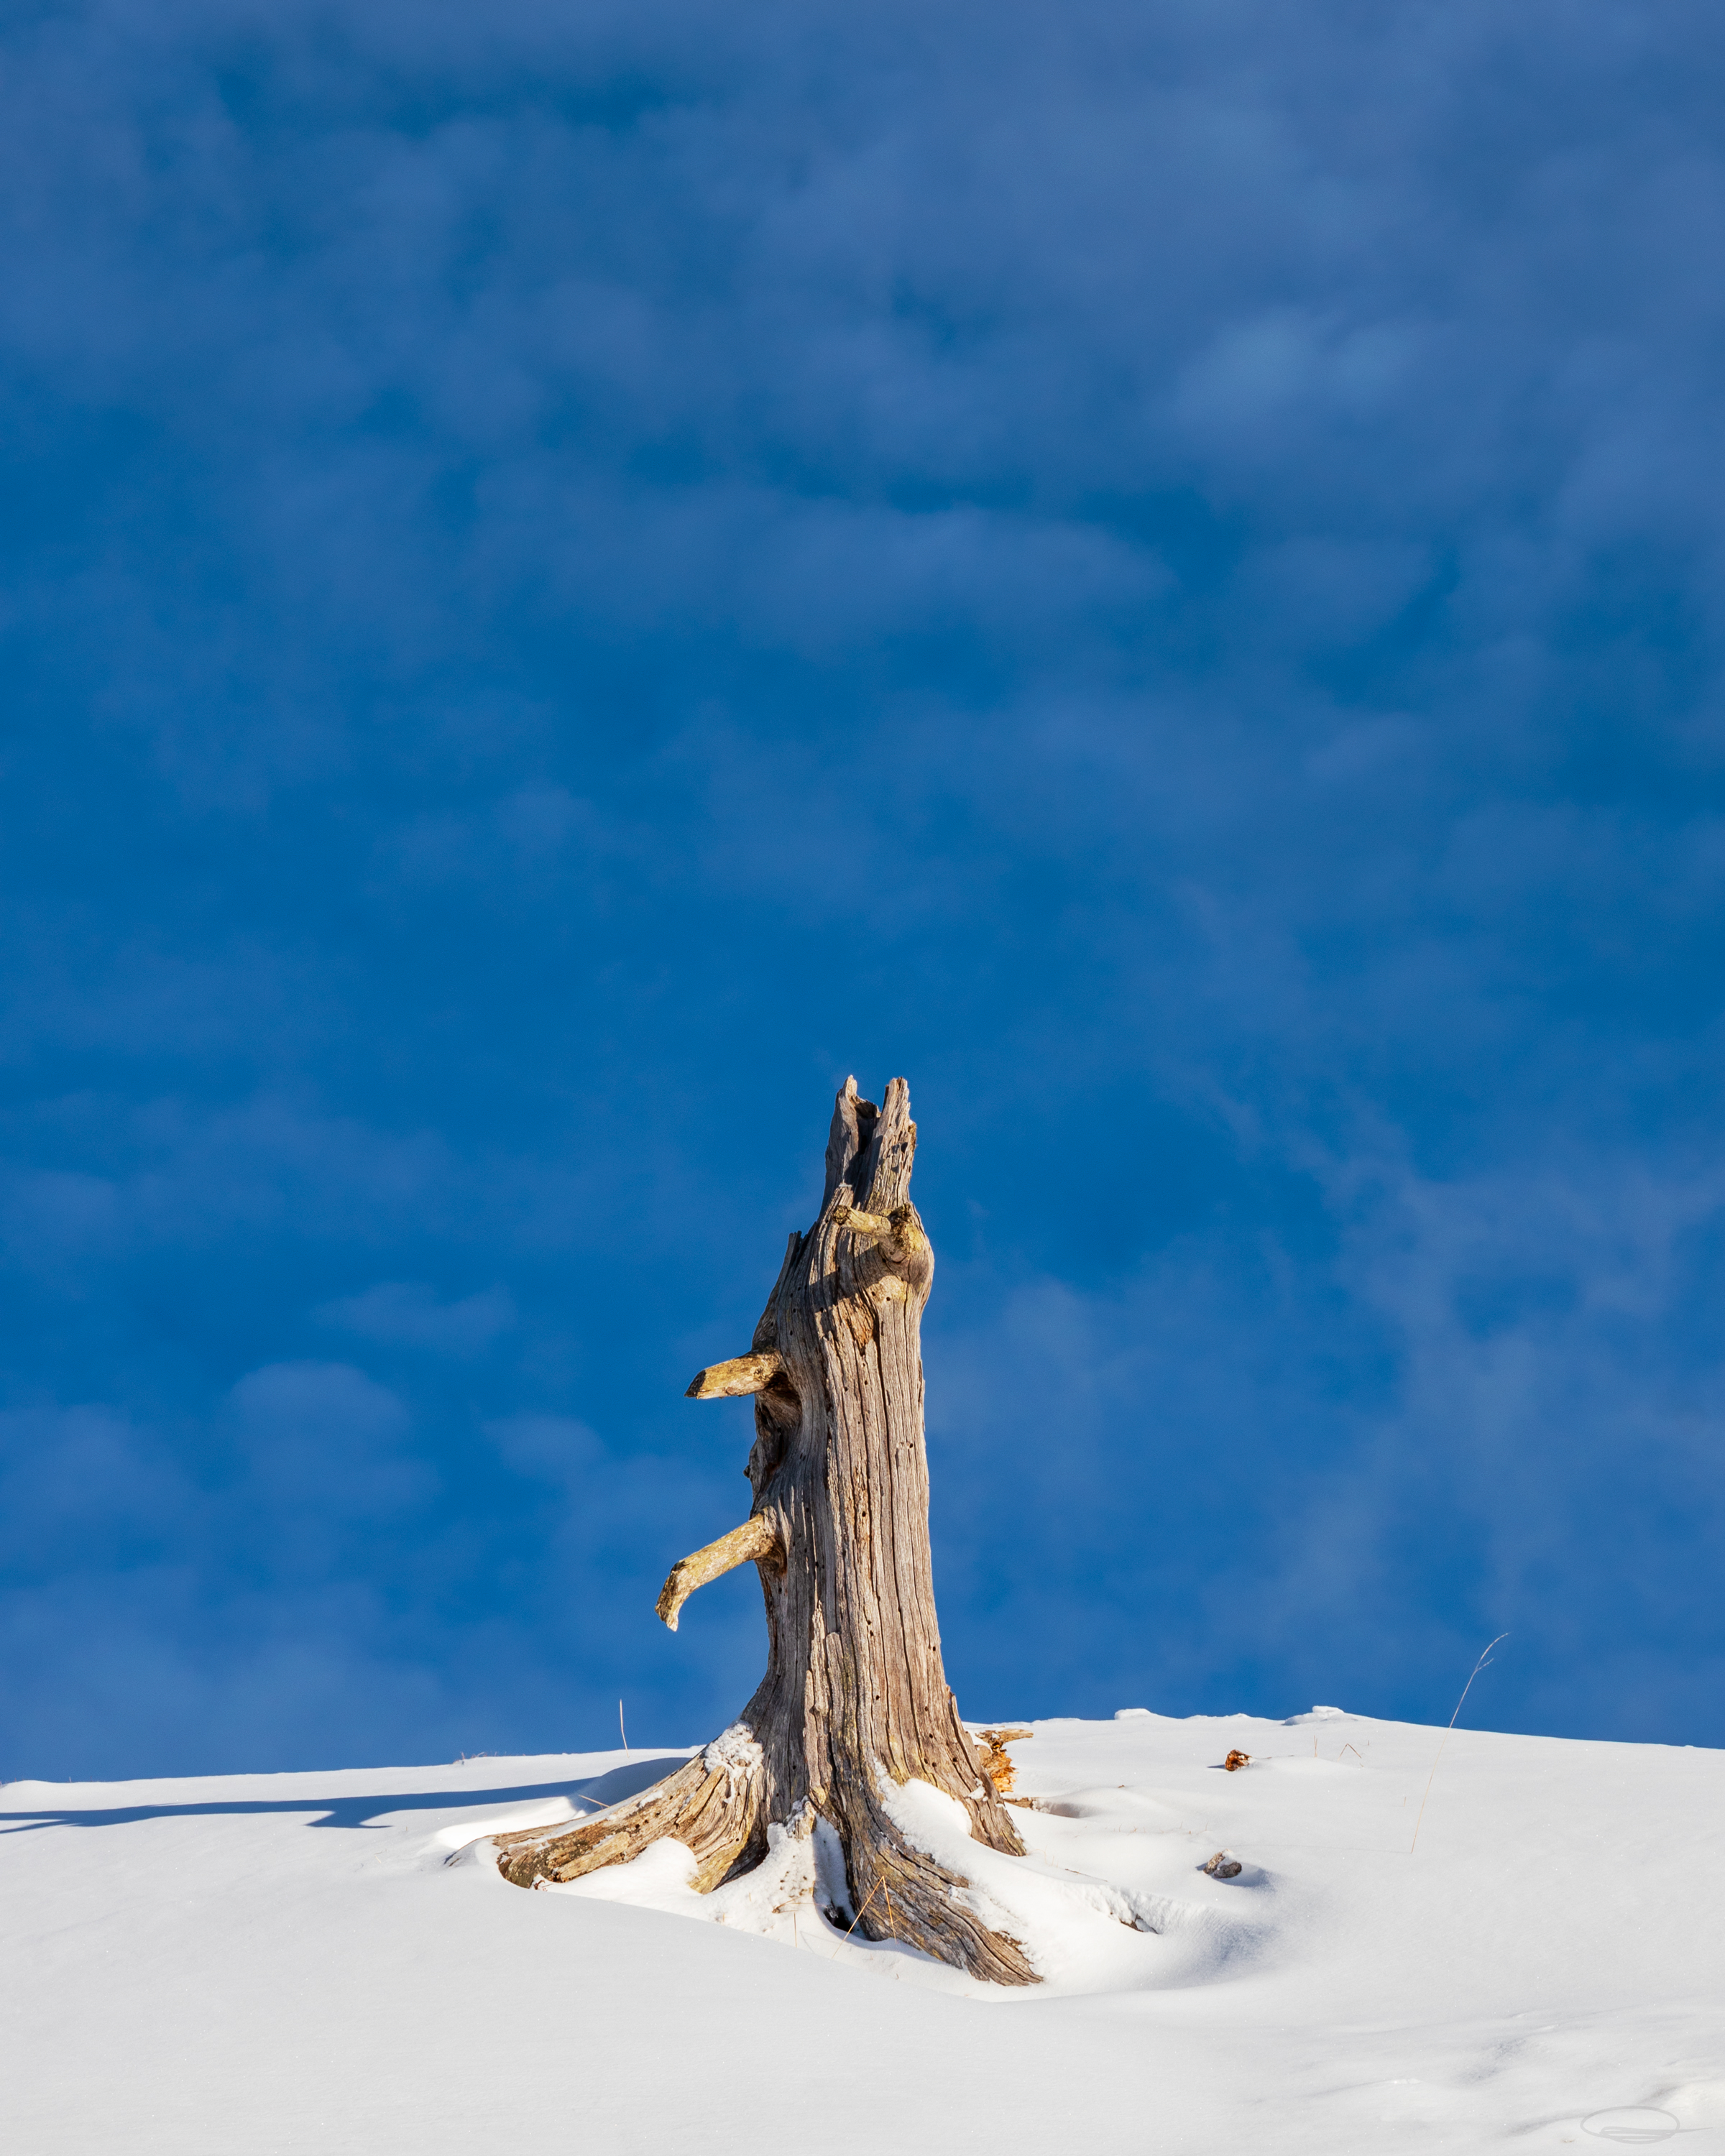 Tree Stump in the Snow on the Dobratsch Mountain